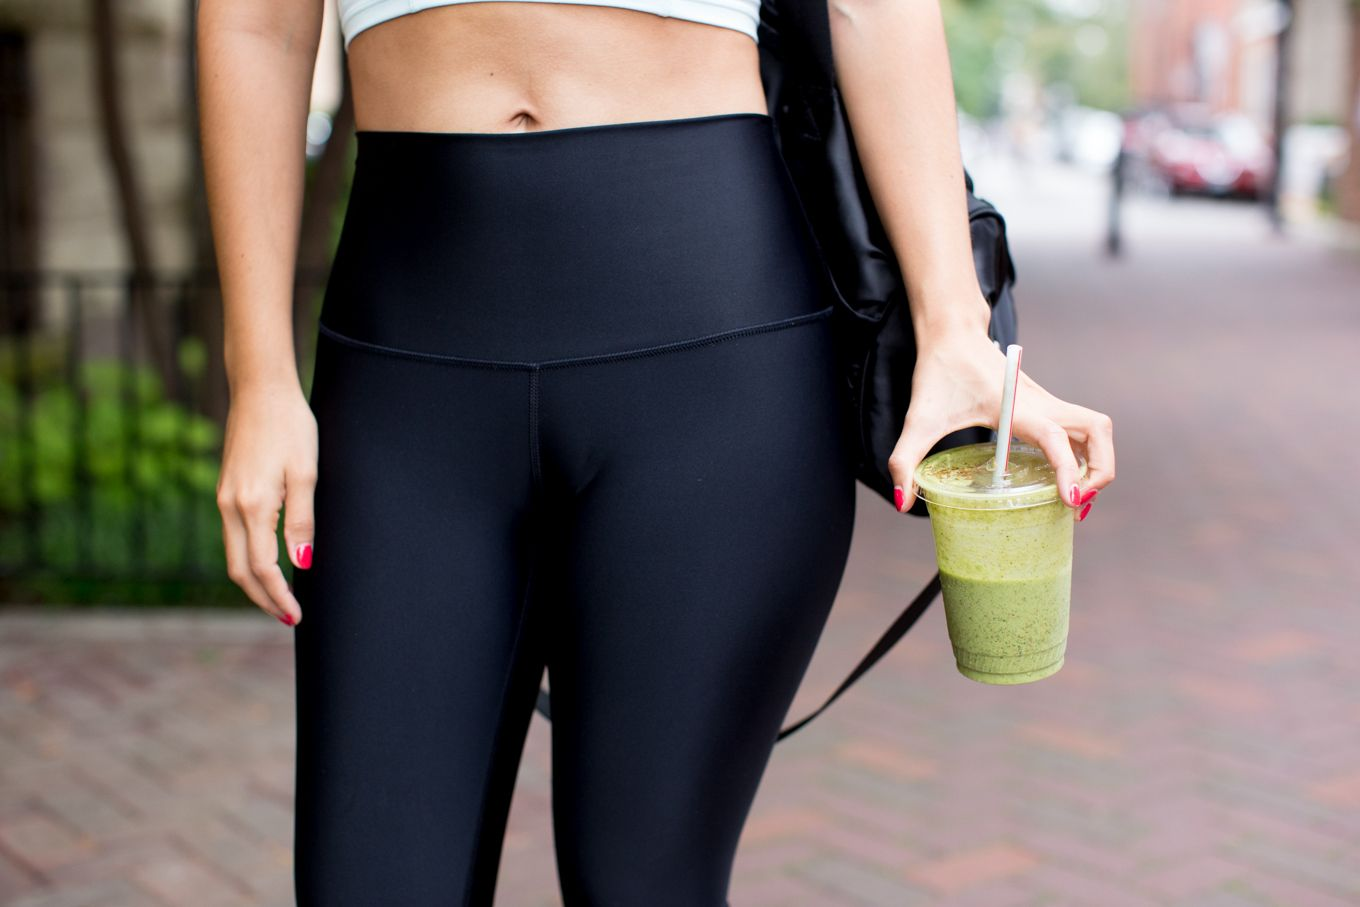 New Year, New You? Five ways to detox and retox!